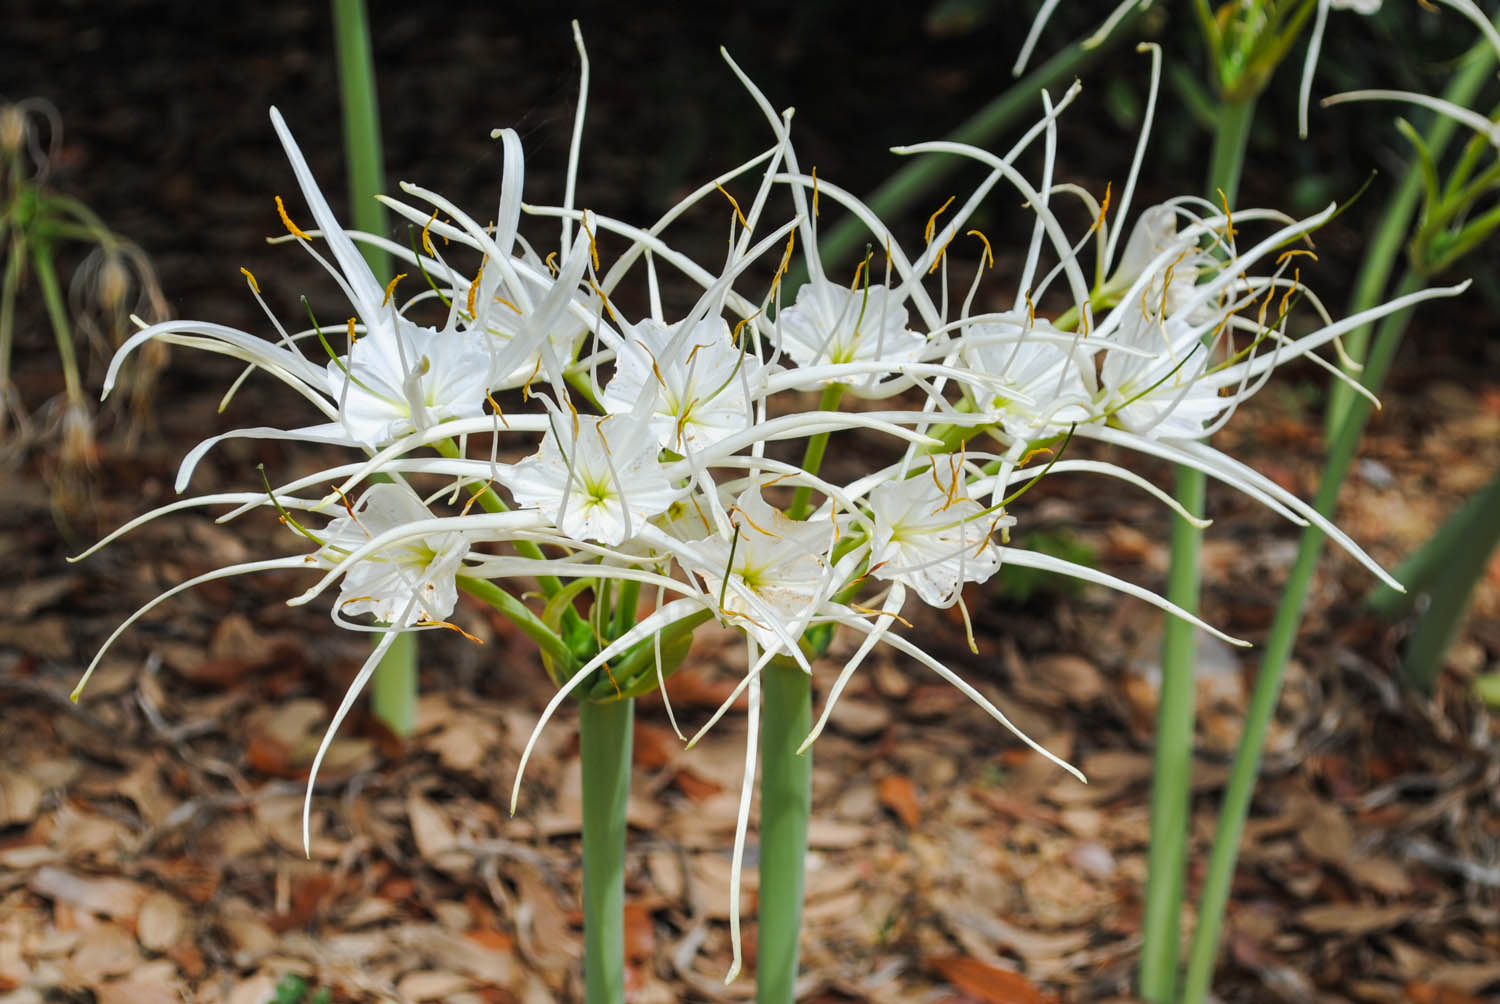 August flowering spider lilies like this  Hymenocallis galvestonensis  I saw at Peckerwood Garden a few years ago are a welcome sight in summer.